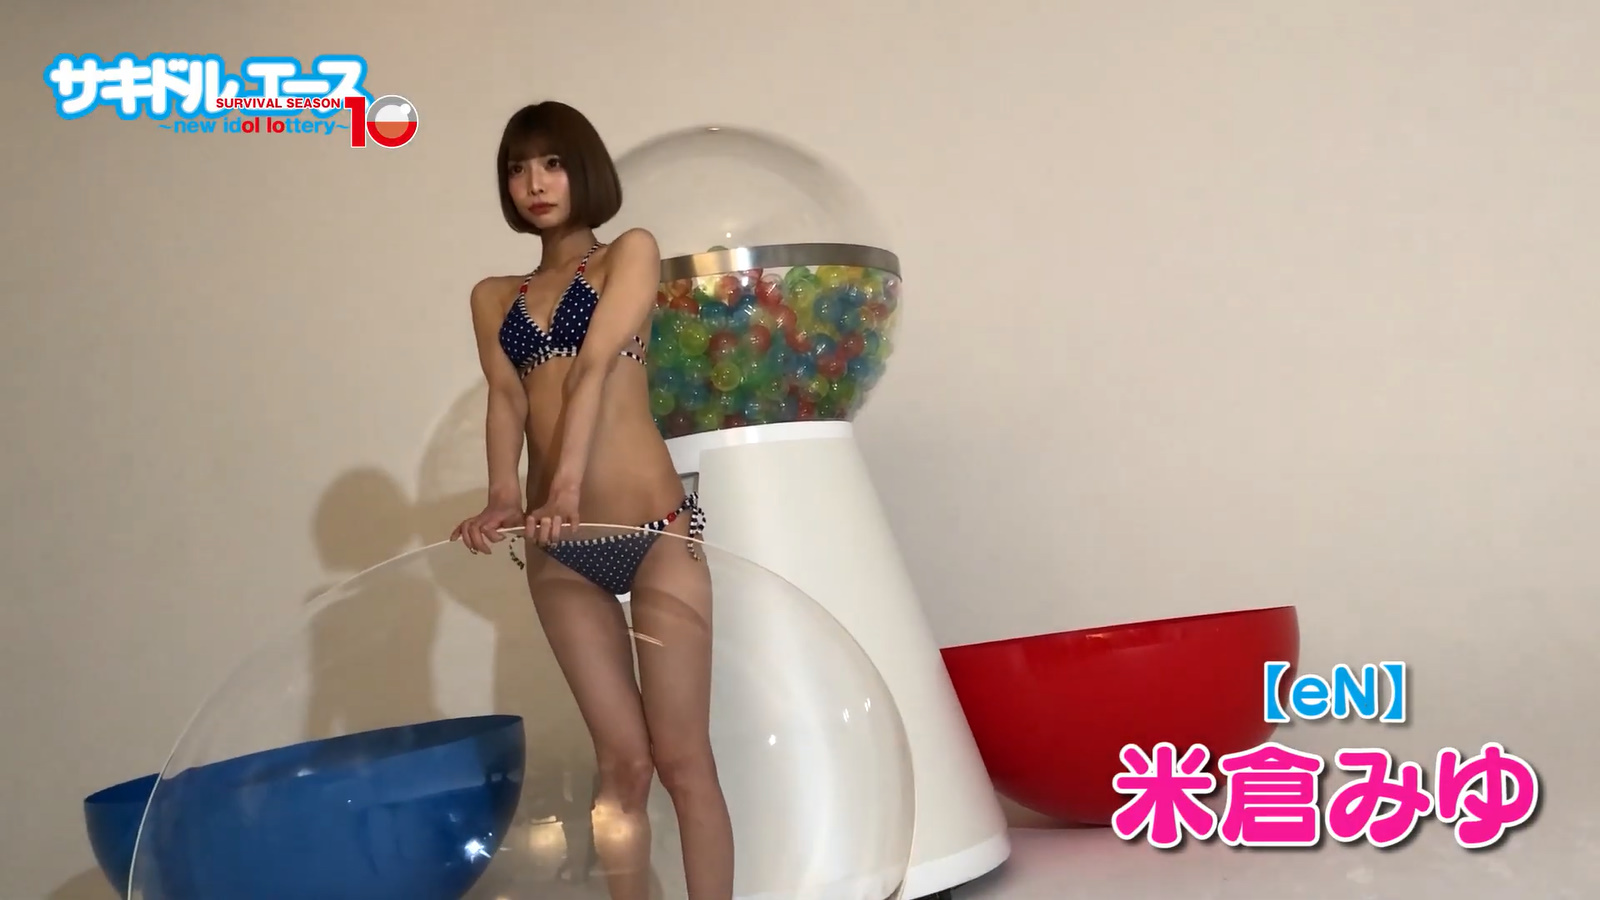 Sakidol Ace 10 Introduction Movie Capture of Swimsuit200